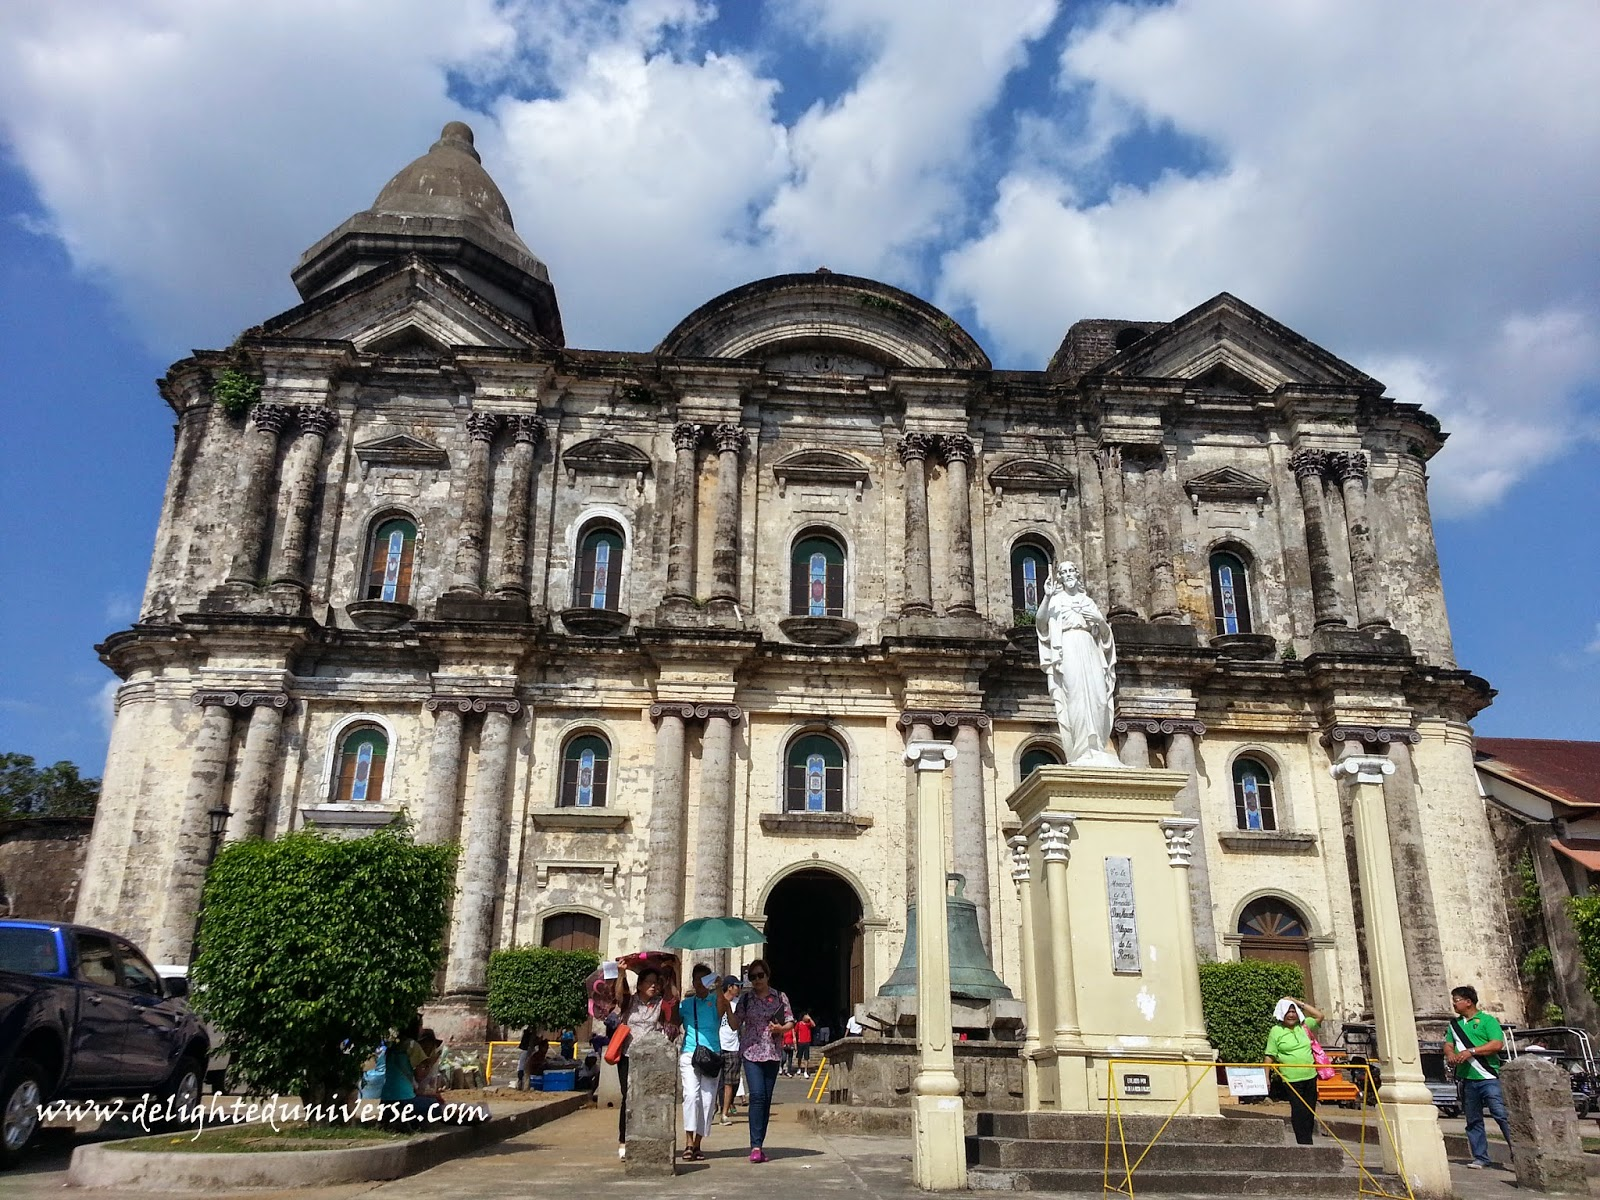 taal church basilica st martin de tours